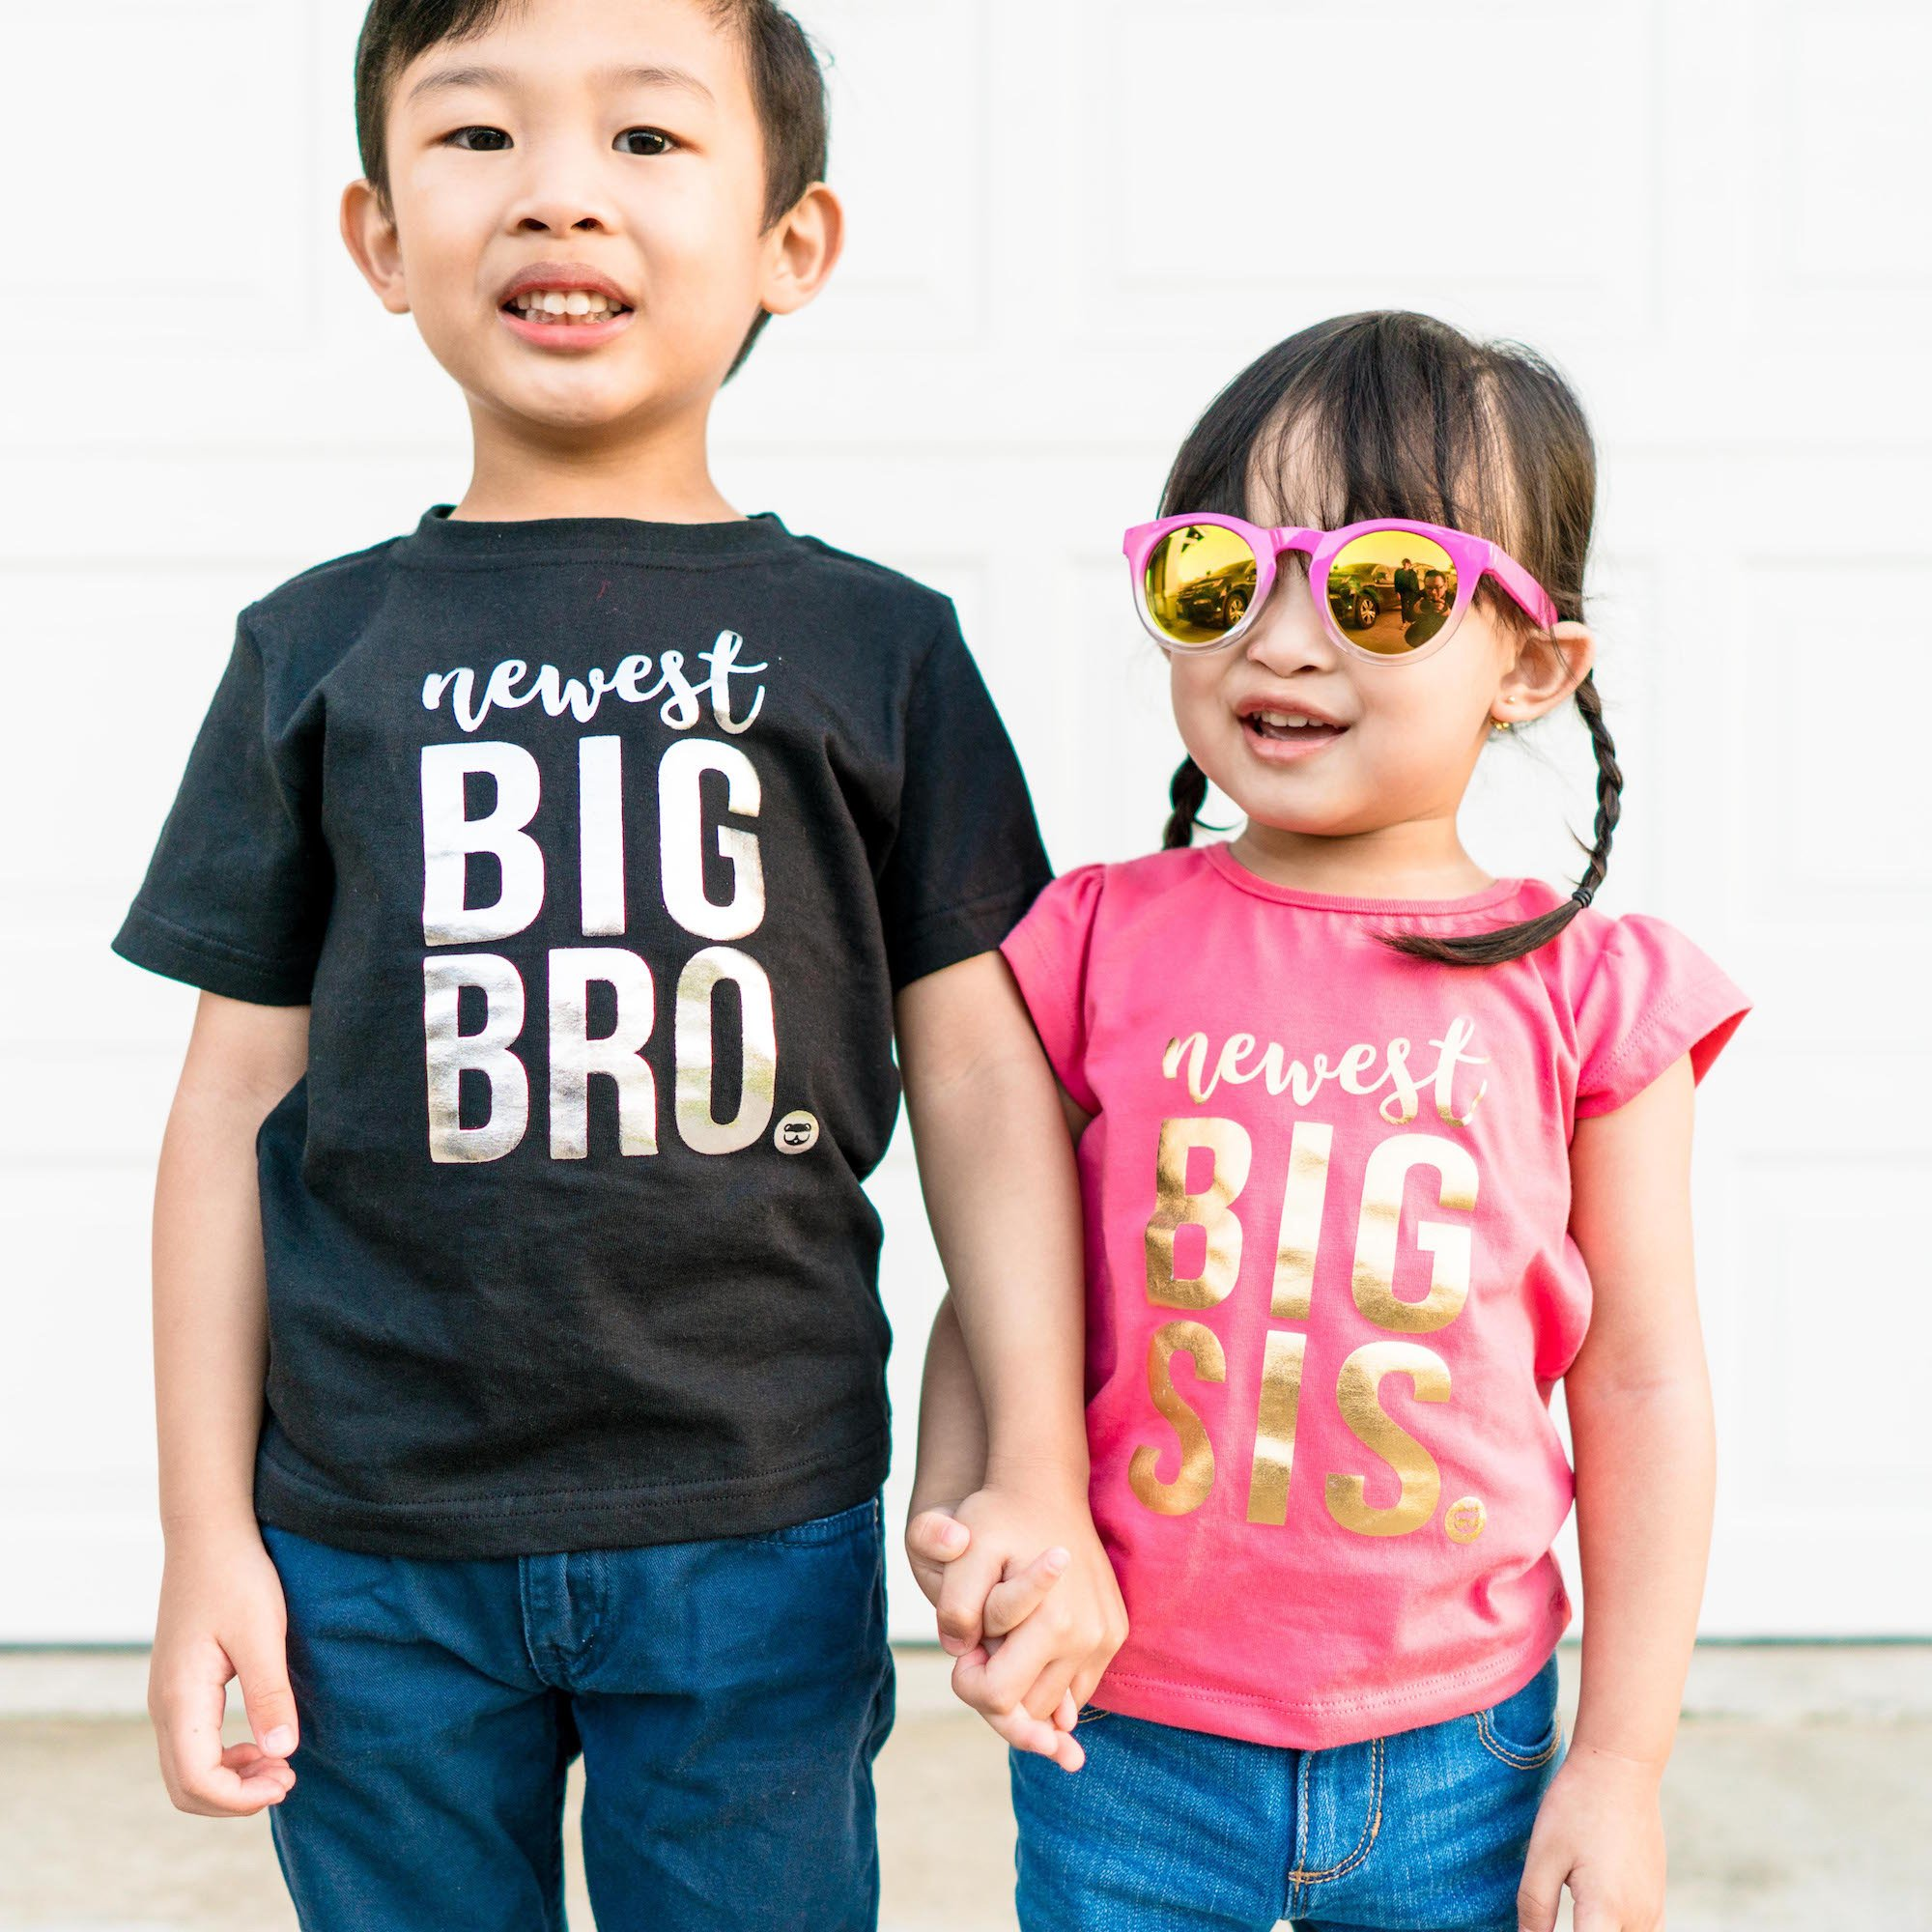 Fayfaire Big Sister Shirt Outfit : Boutique Quality Pregnancy Announcement Newest Big Sis 3T by Fayfaire (Image #6)